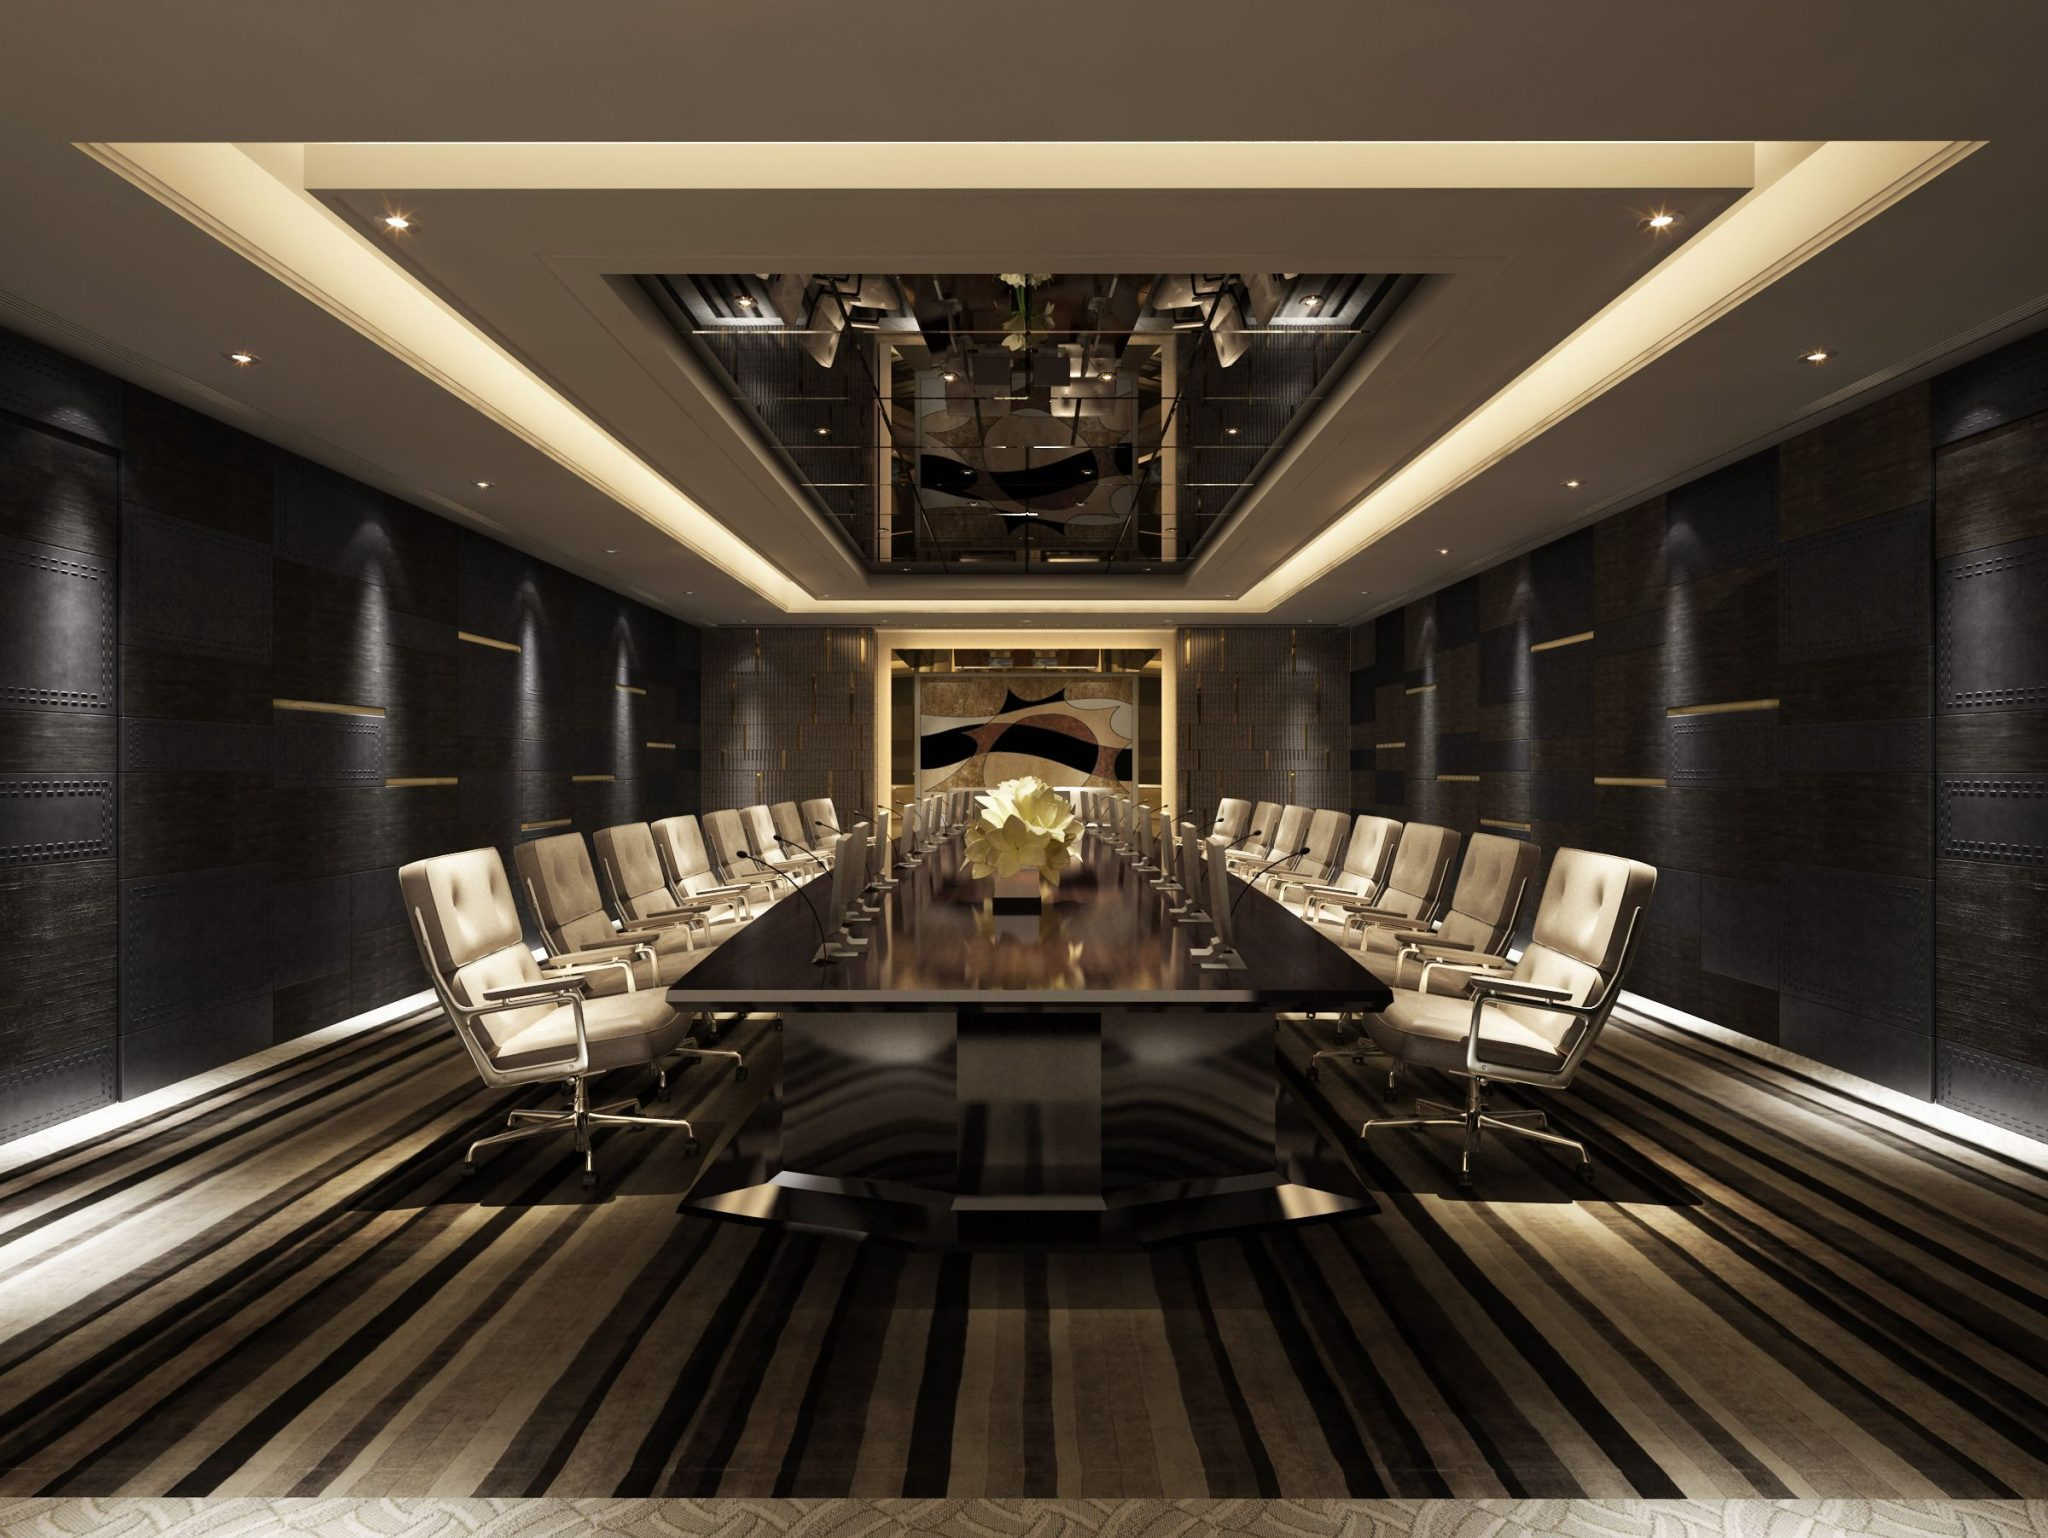 How to find the perfect boardroom table?